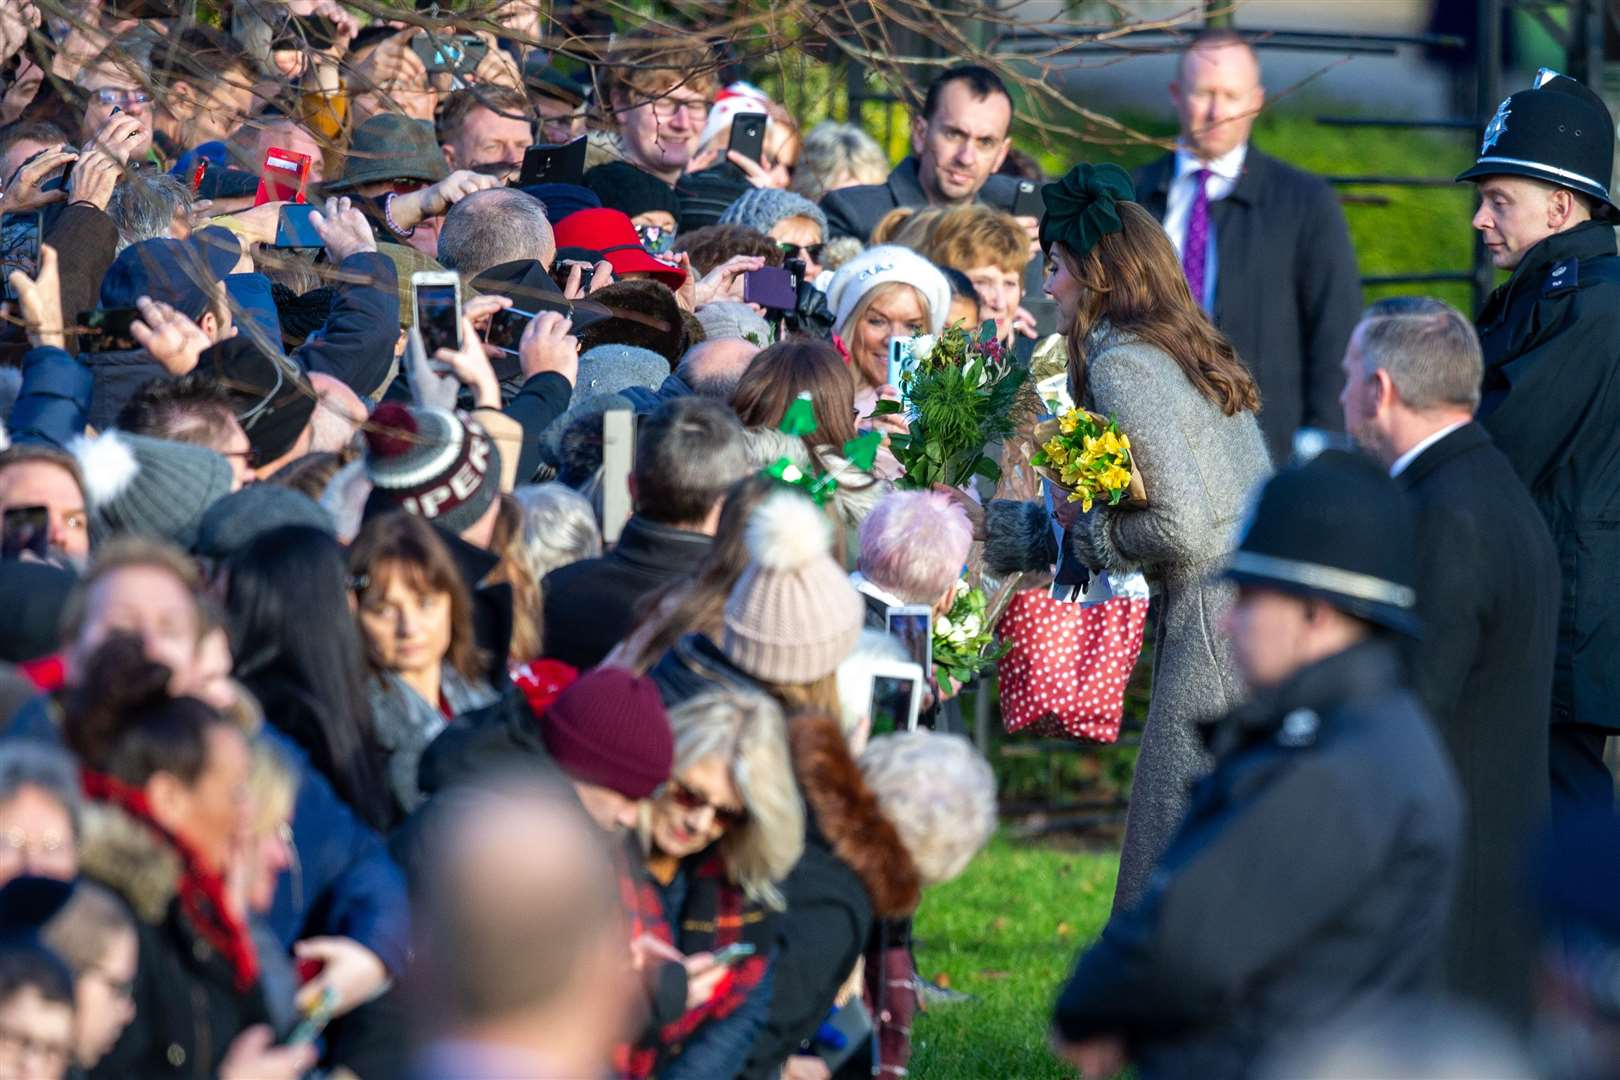 Prince Andrew skips Christmas Day walk after royals' 'bumpy' year